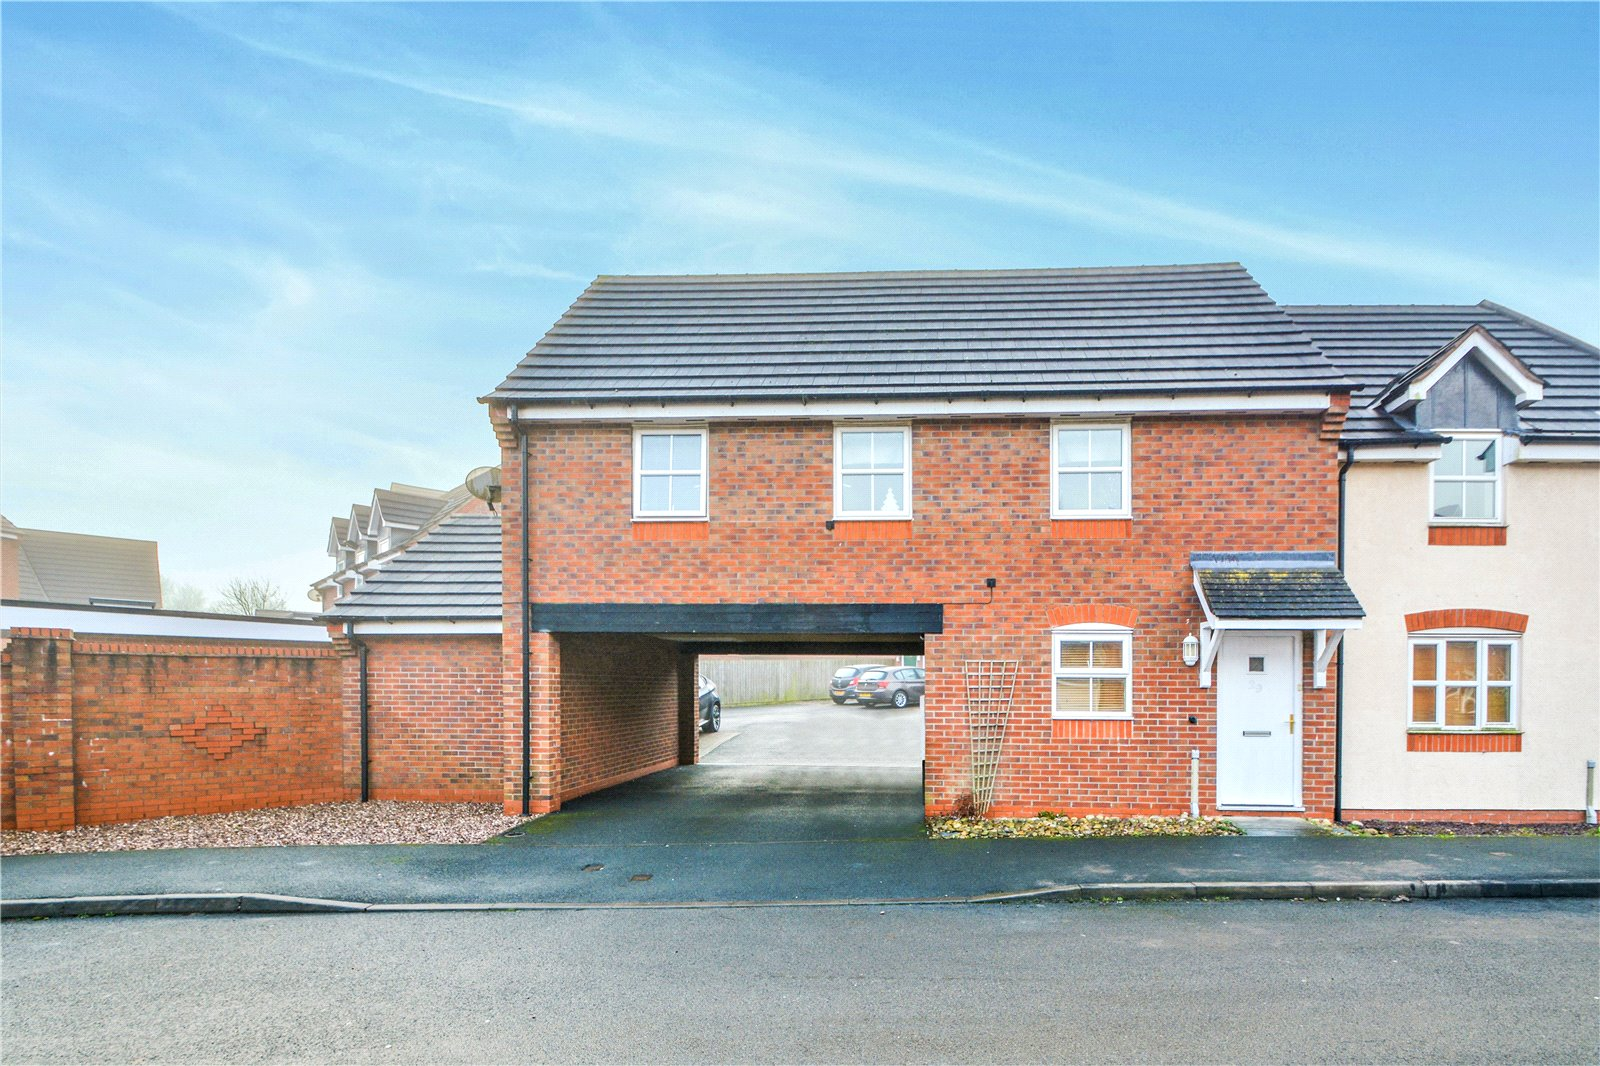 2 Bedrooms Terraced House for sale in 29 The Saplings, Telford, TF7